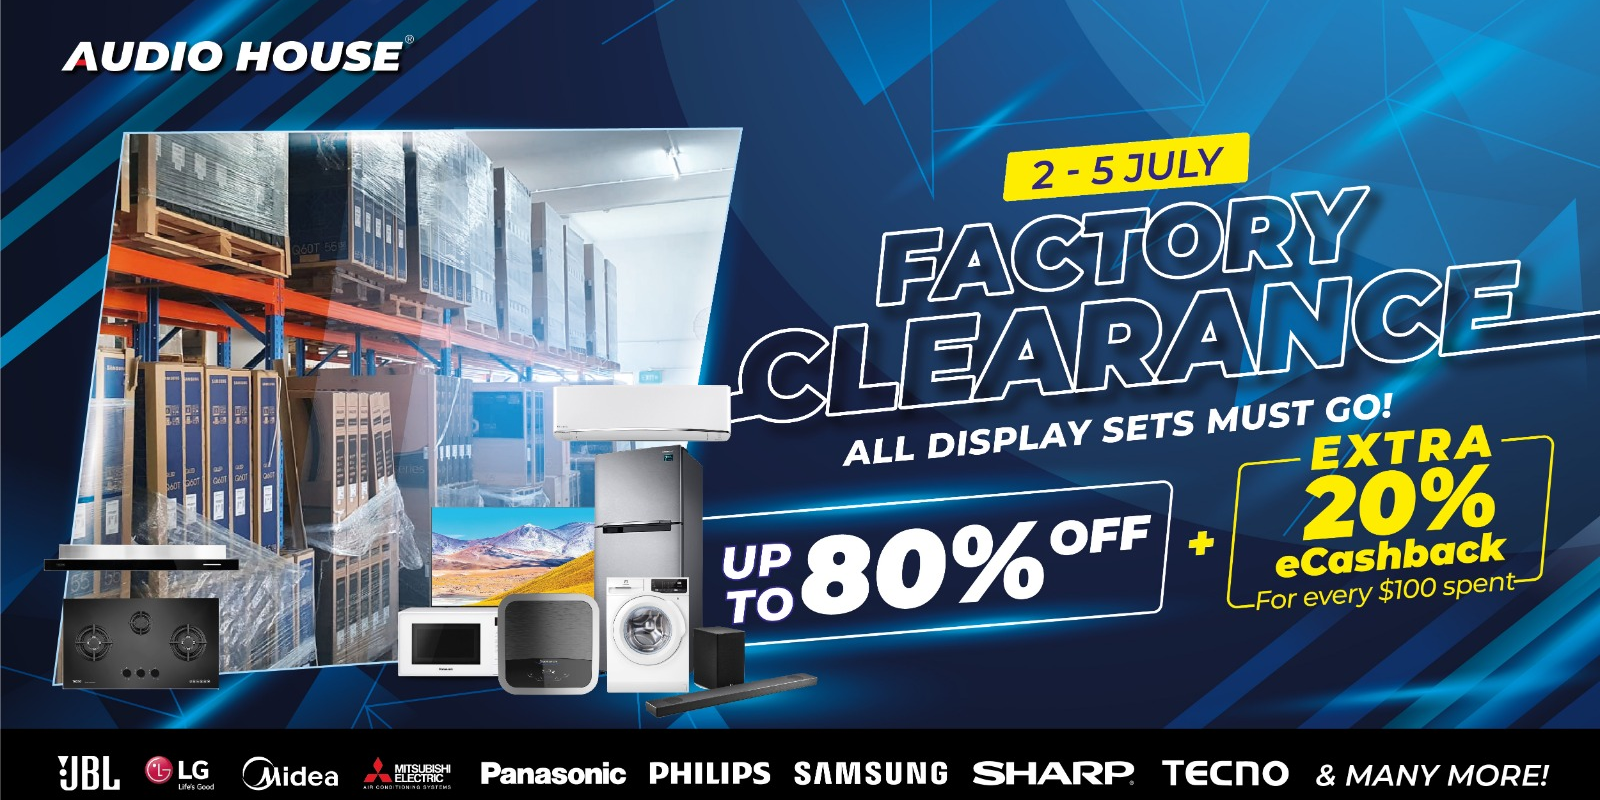 [Audio House Factory Clearance Sale] Enjoy Up to 80% OFF + 20% eCashback For Every $100 Spent!